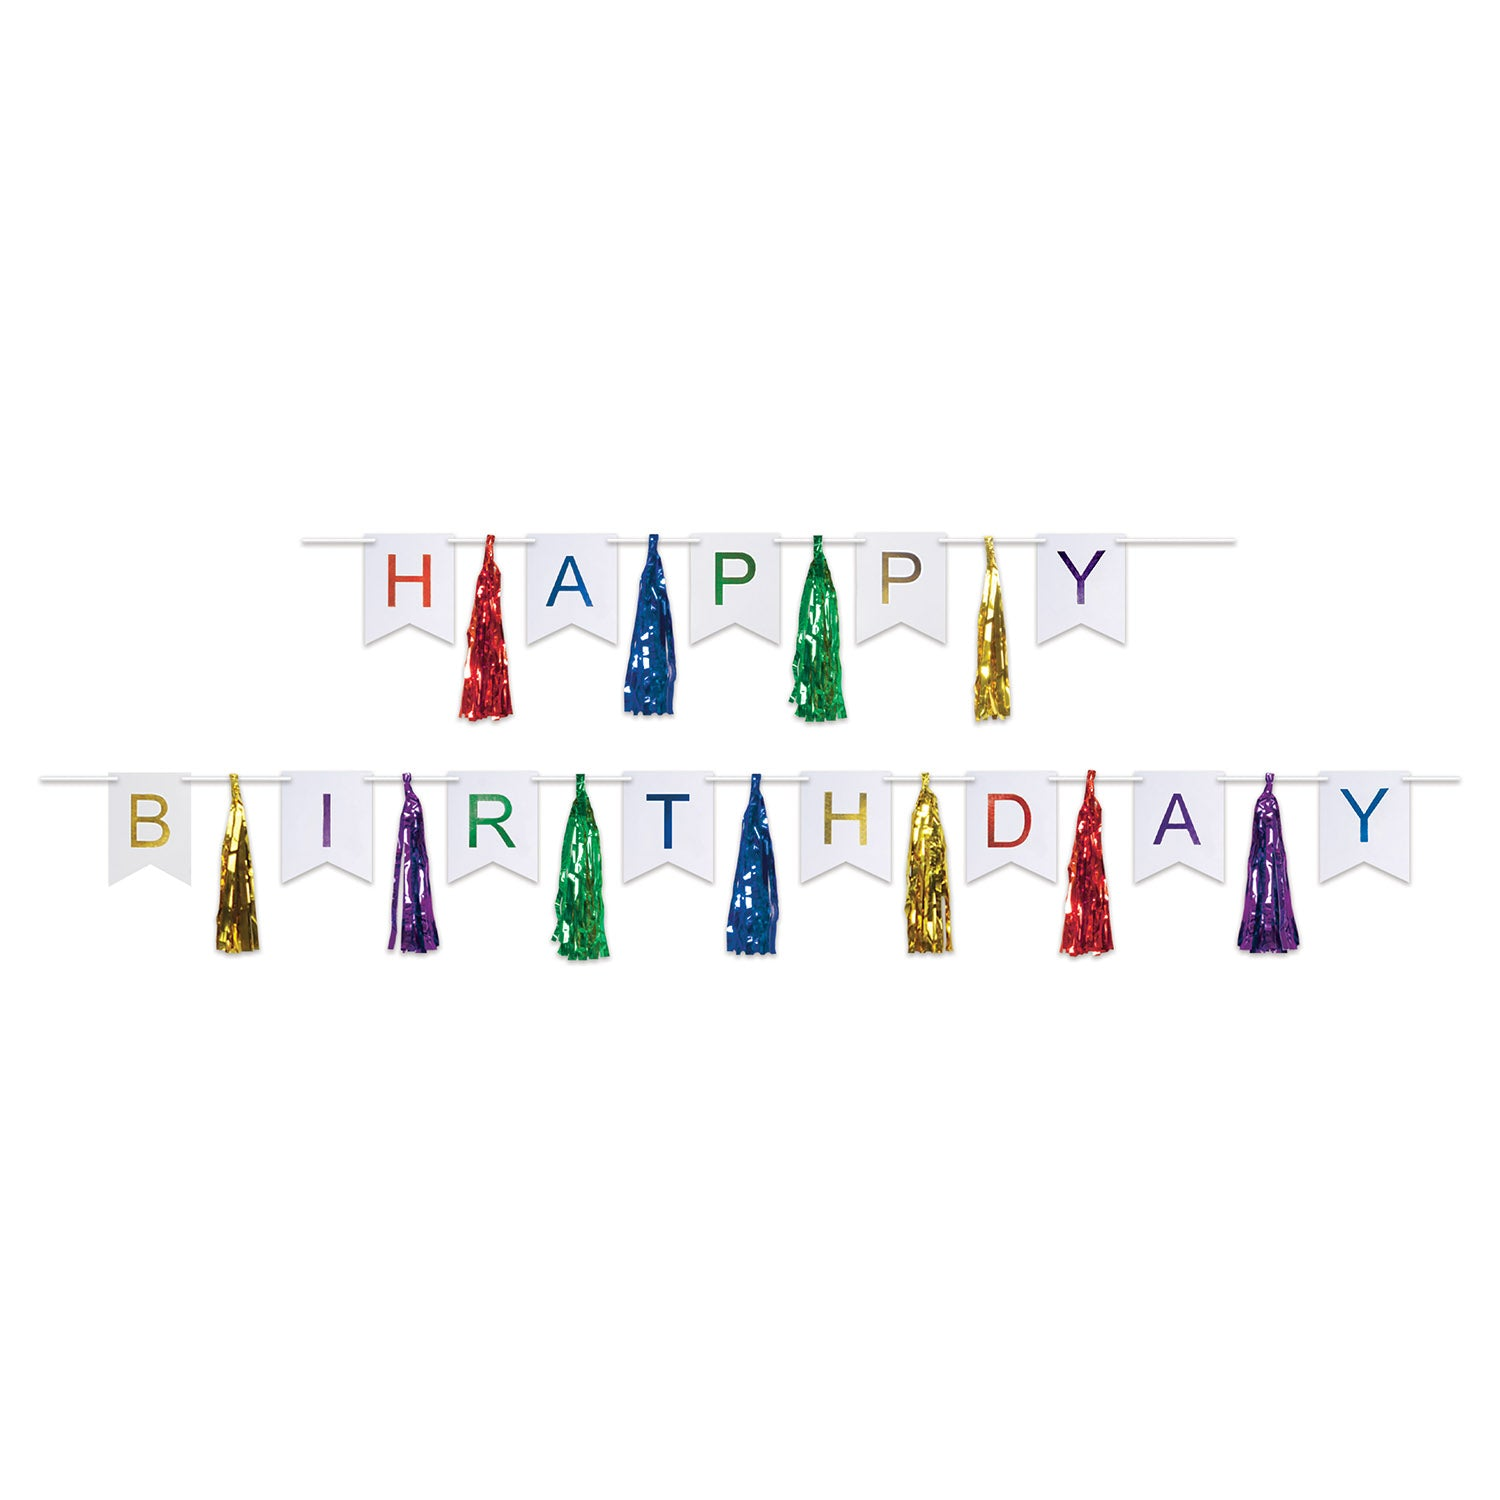 Happy Birthday Tassel Streamer (2/Pkg) by Beistle - Birthday Party Supplies Decorations